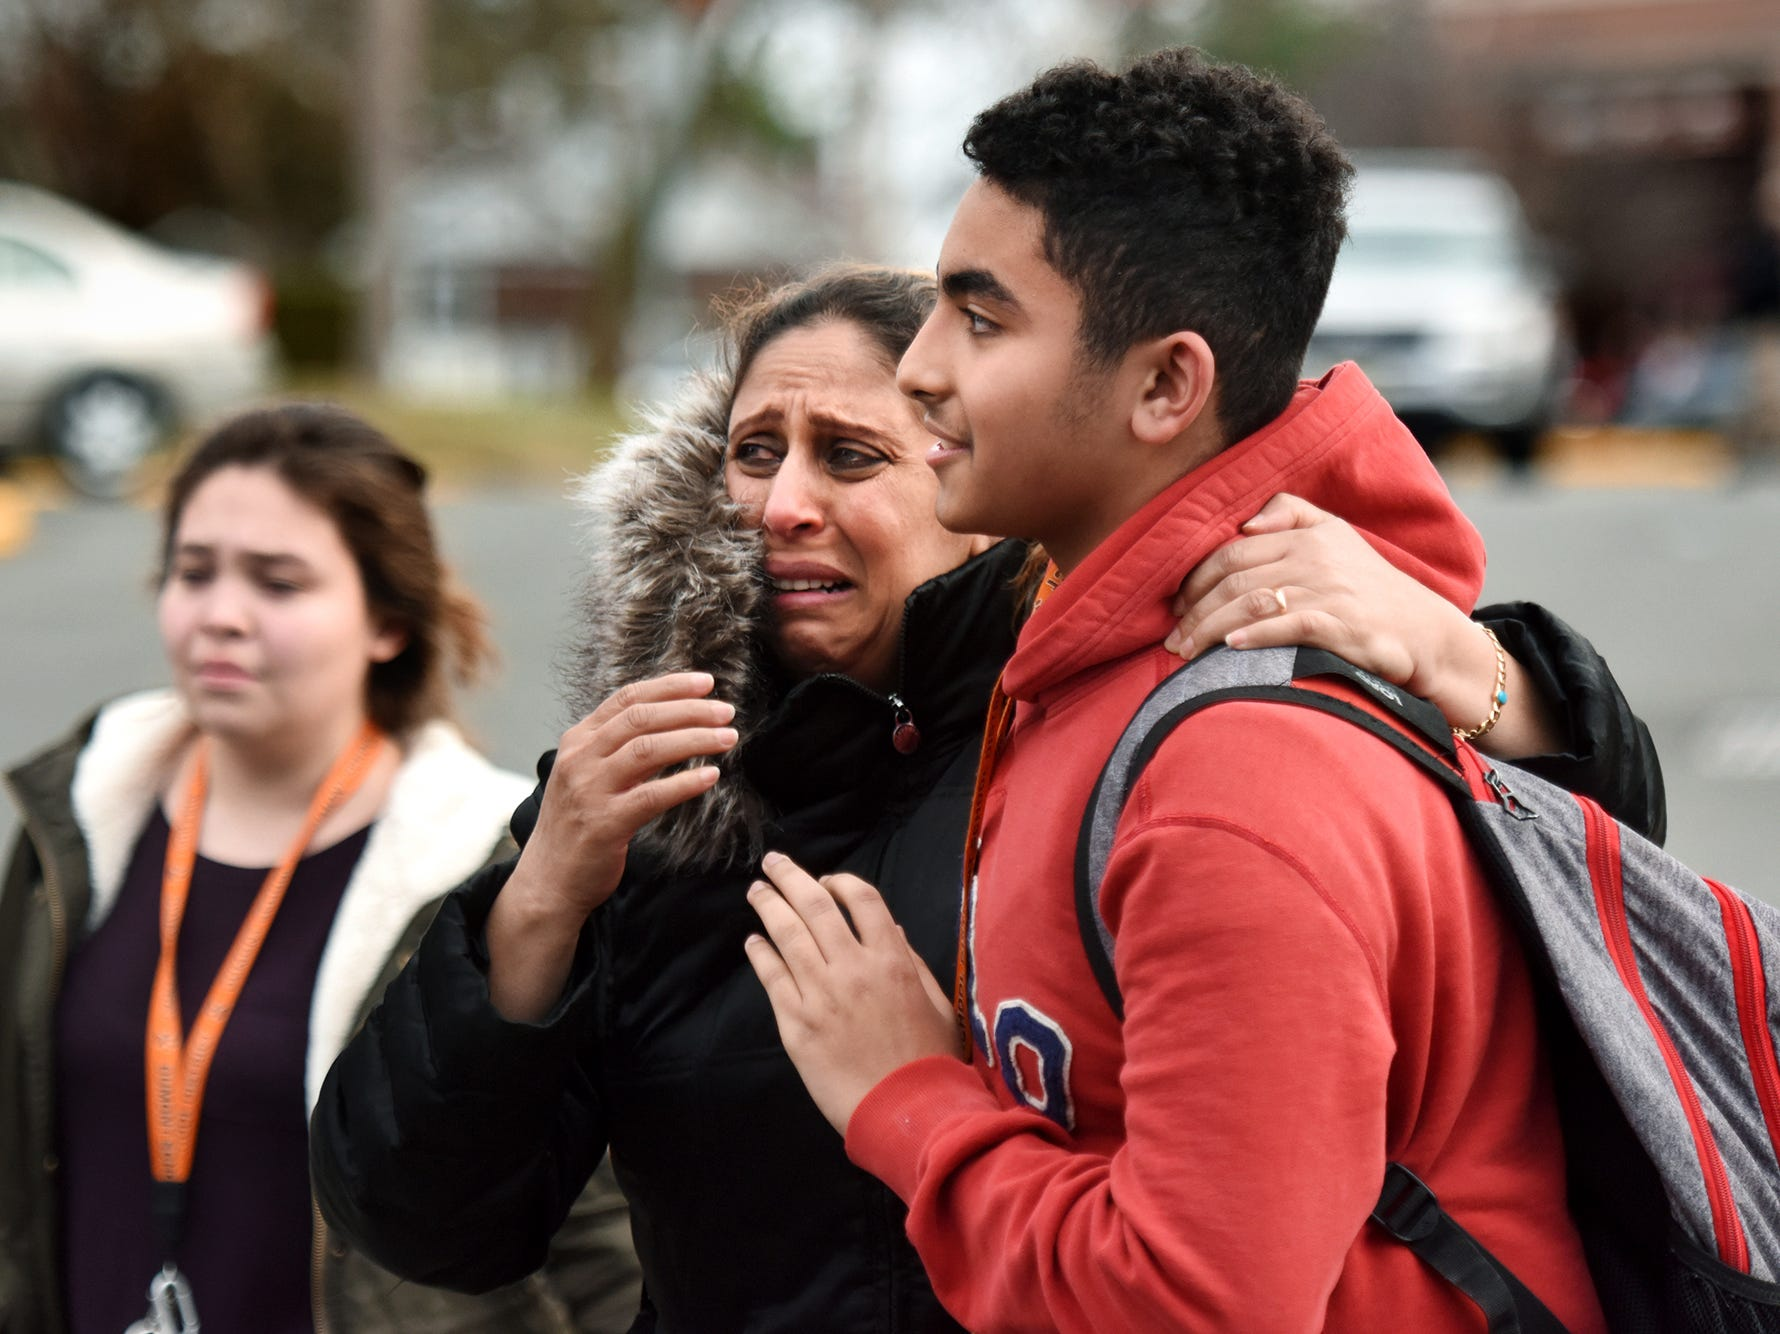 Olivia Rahman is overcome with emotion as she sees her son Joseph after he is released from lockdown at Dumont High School. Rahman had passed out earlier while waiting for her son and was taken away in an ambulance, but was back in time to greet her son as he was released from school. Dumont High School was placed under lockdown on Monday afternoon after a threat was found on social media from a fifteen year-old sophomore. The student was arrested at 1:15 p.m. and students were released from school around four o'clock after the school was searched on Monday February 26, 2018.